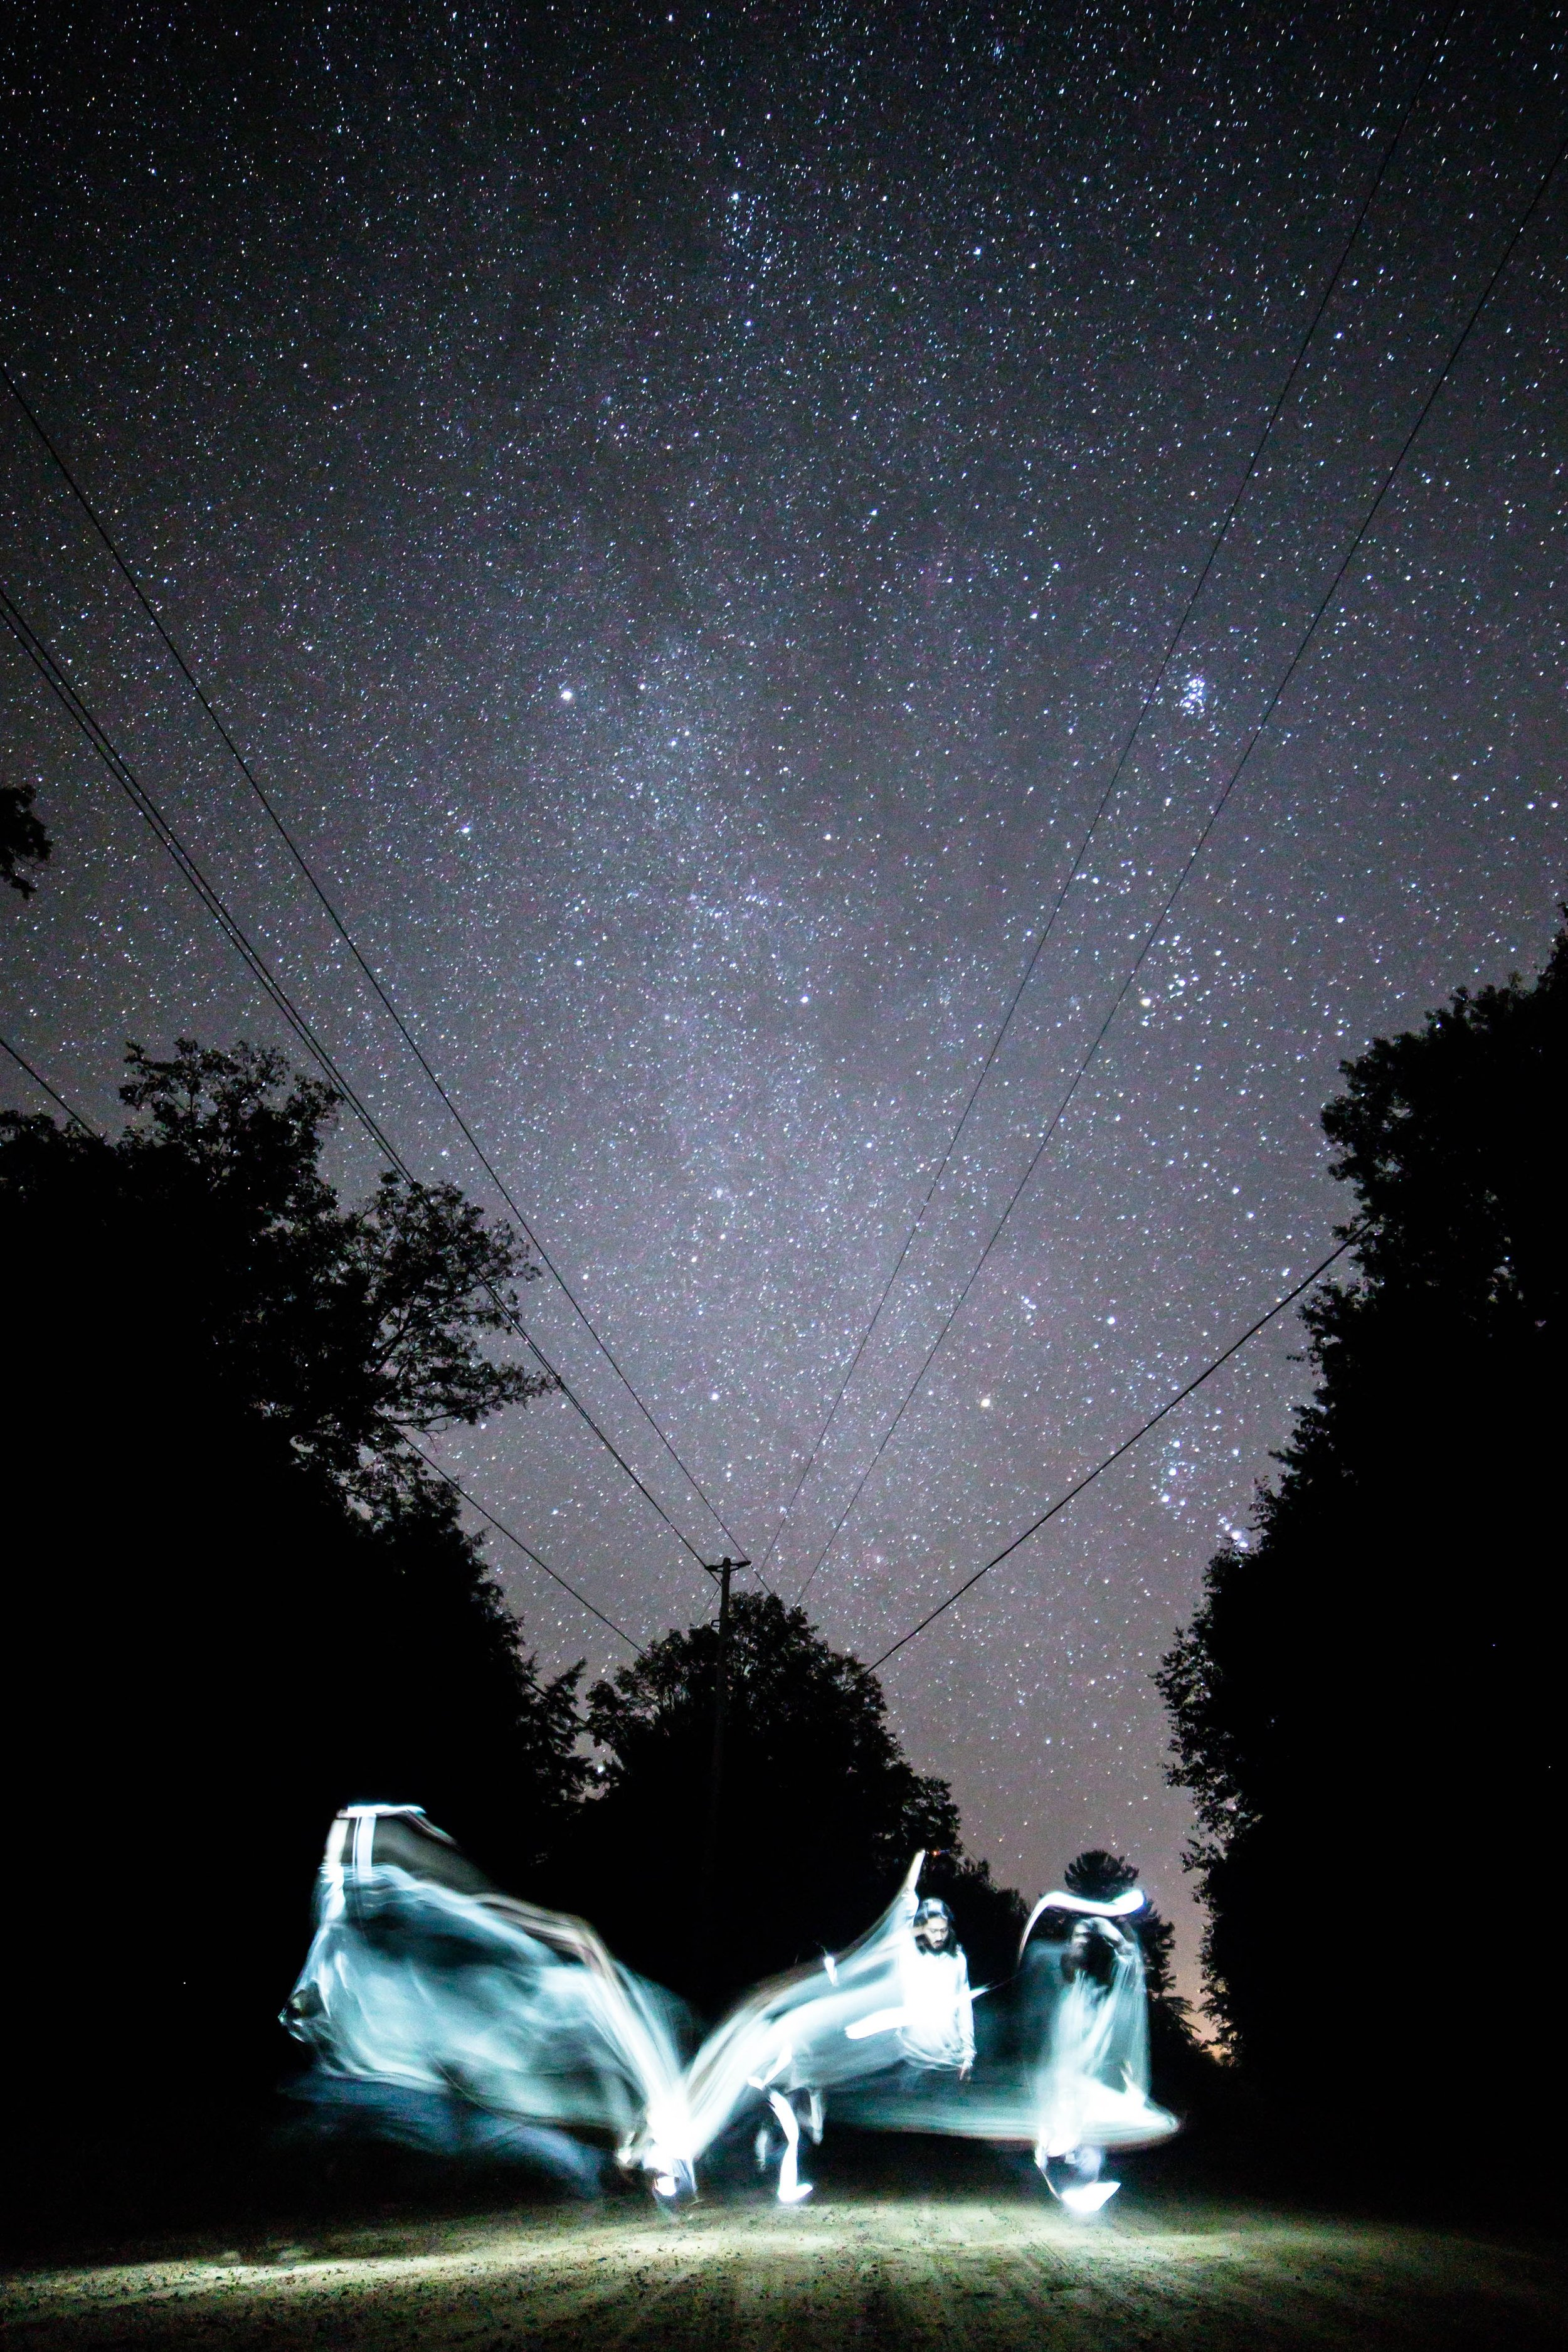 Cosmic Star Child photographed by Brian the Wizard in Mattawa, Ontario, Canada.